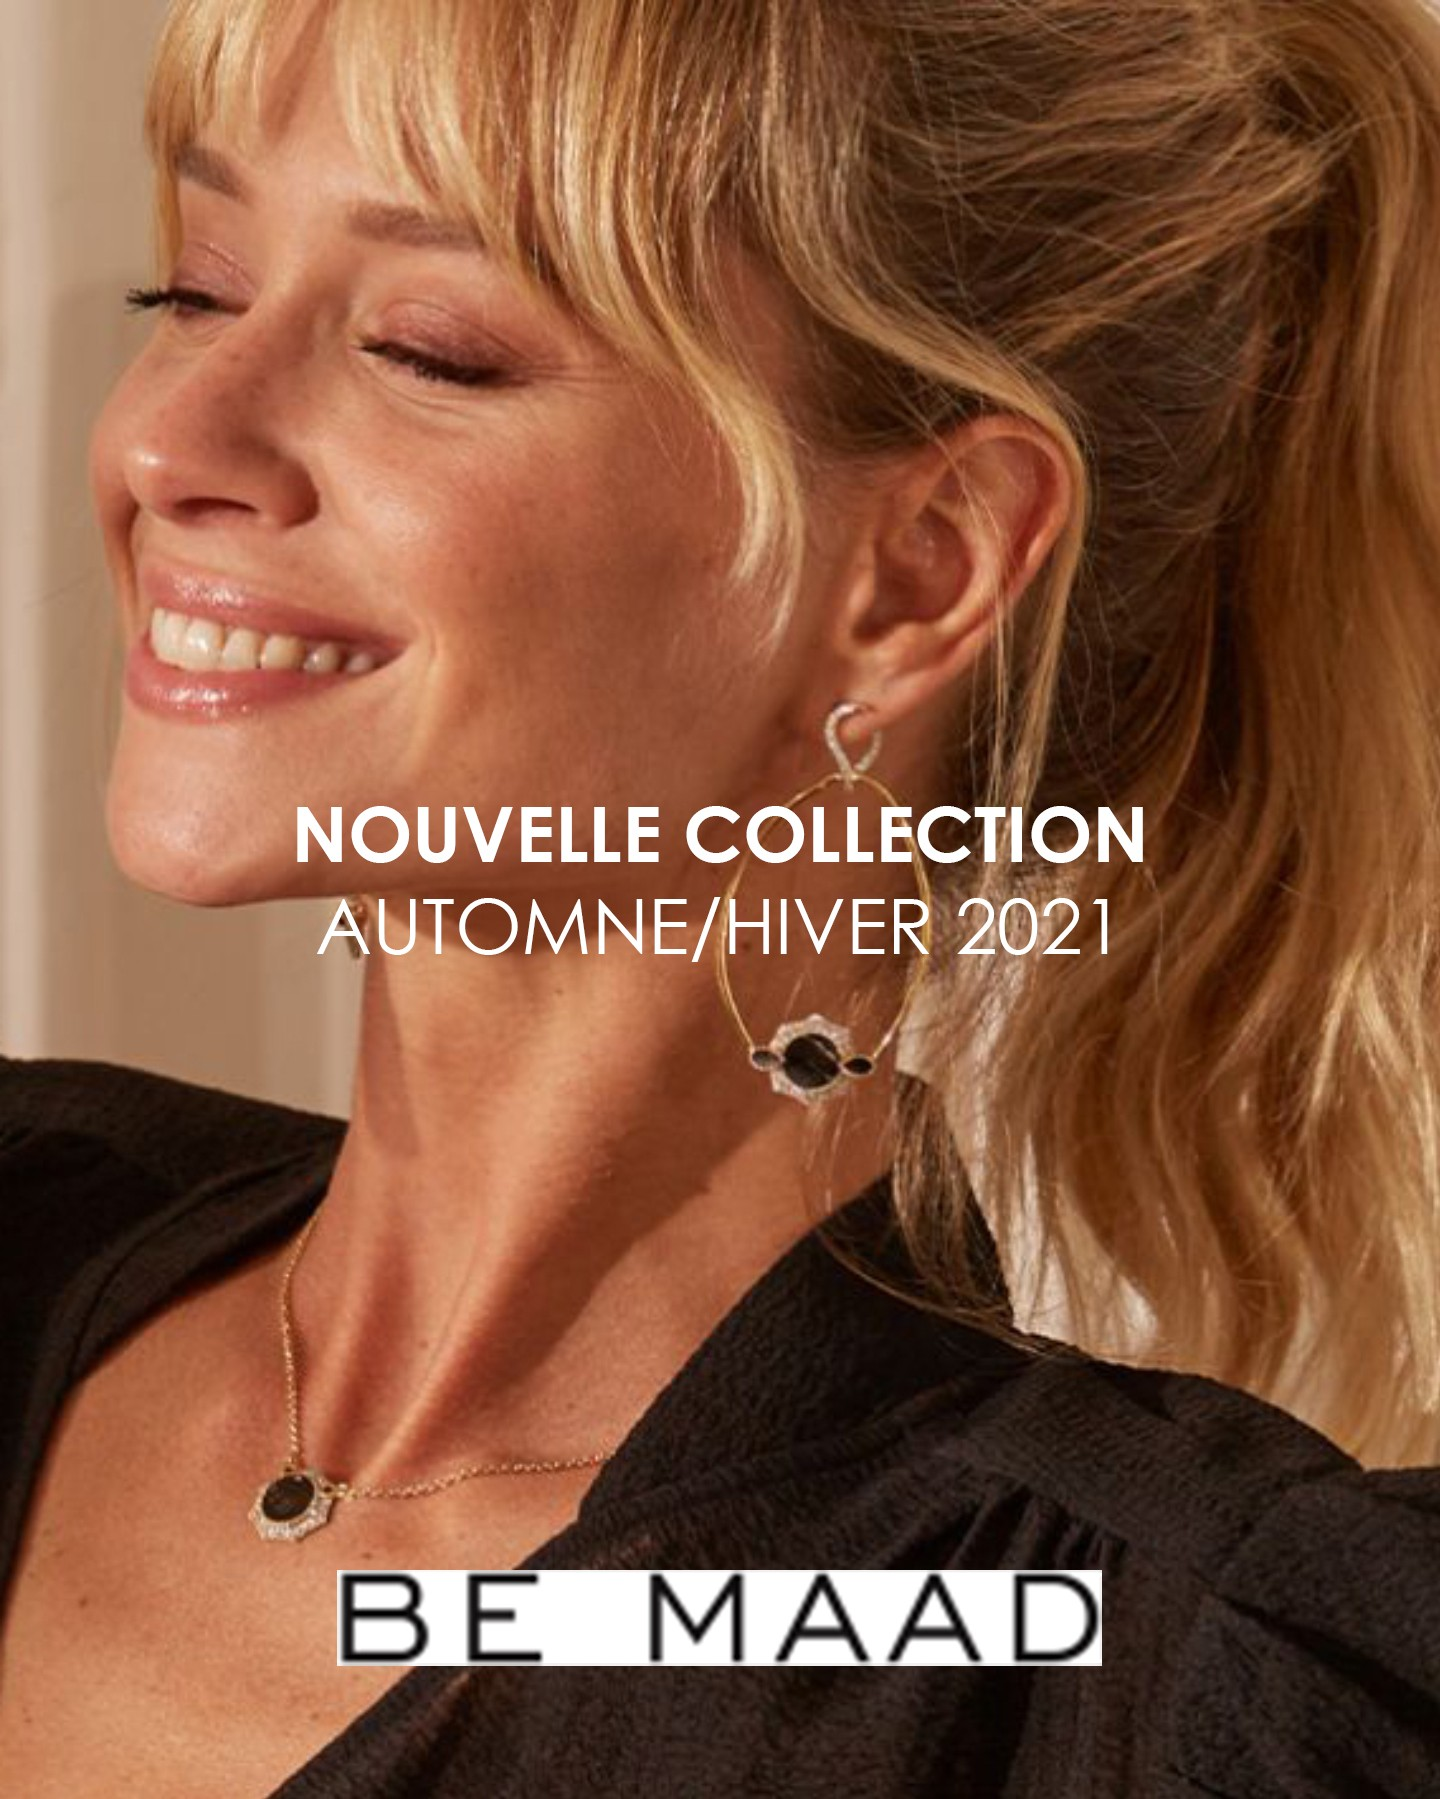 Nouvelle Collection Be Maad